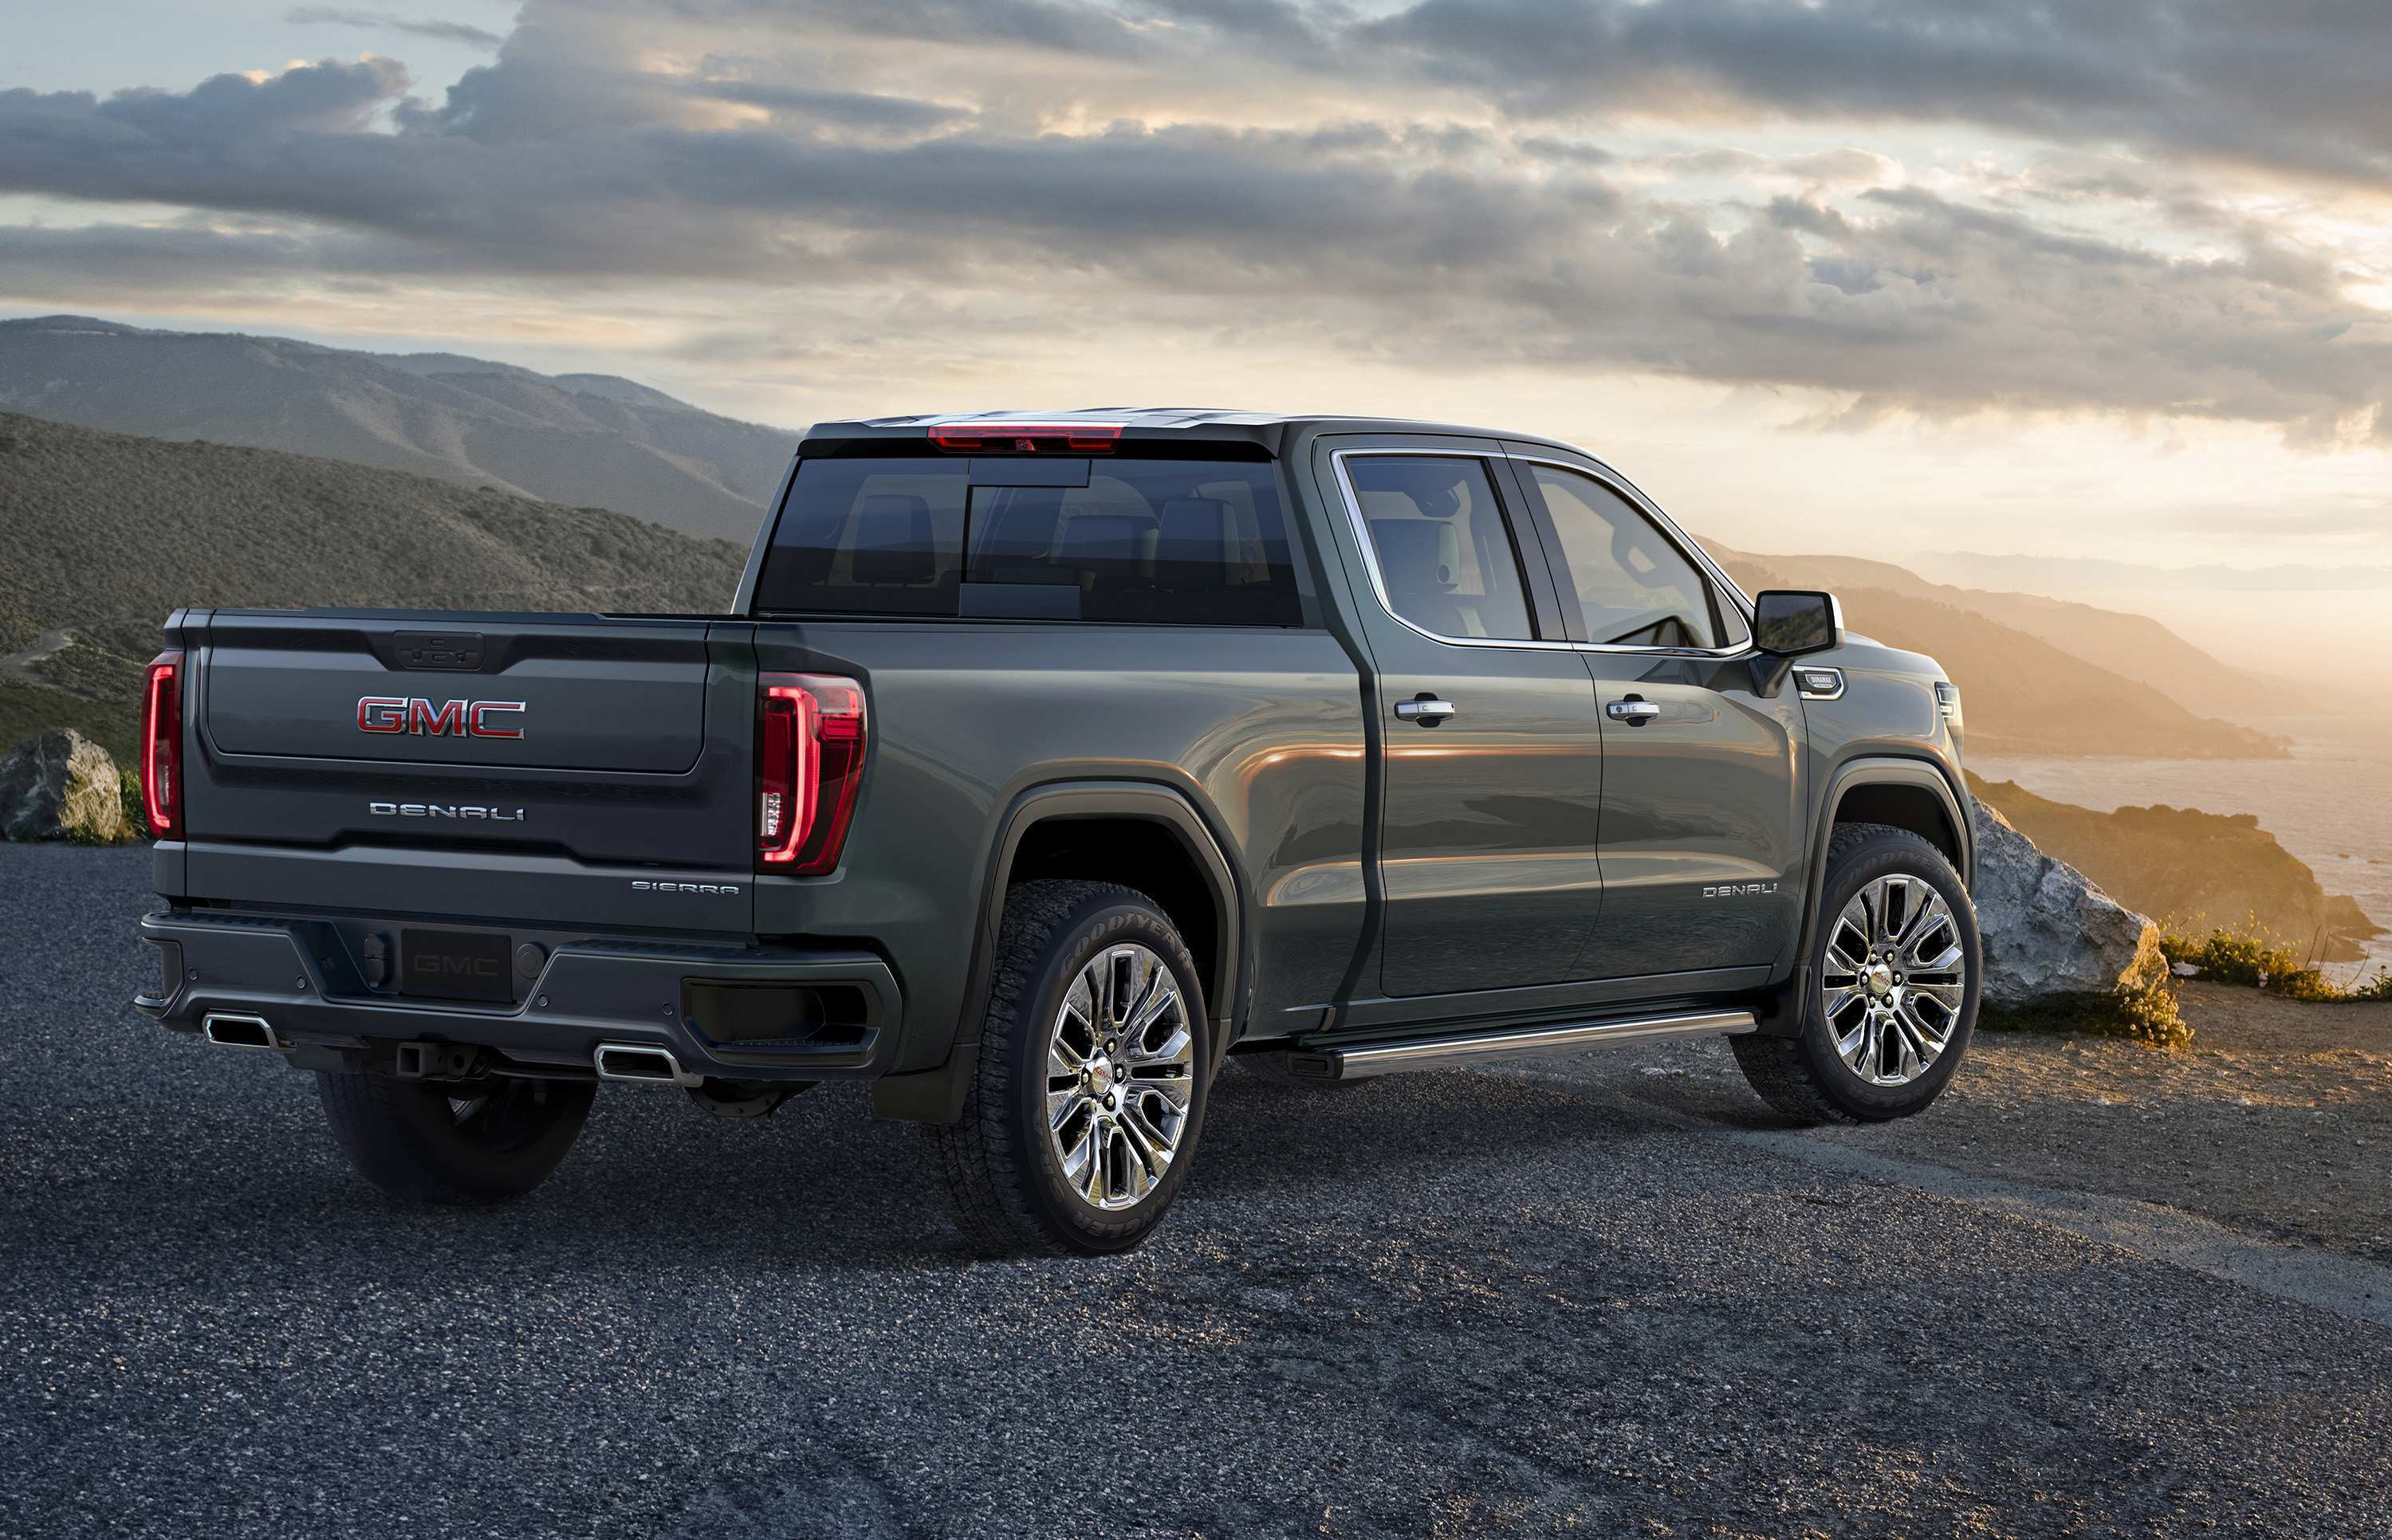 62 All New 2019 Gmc Pics Reviews for 2019 Gmc Pics